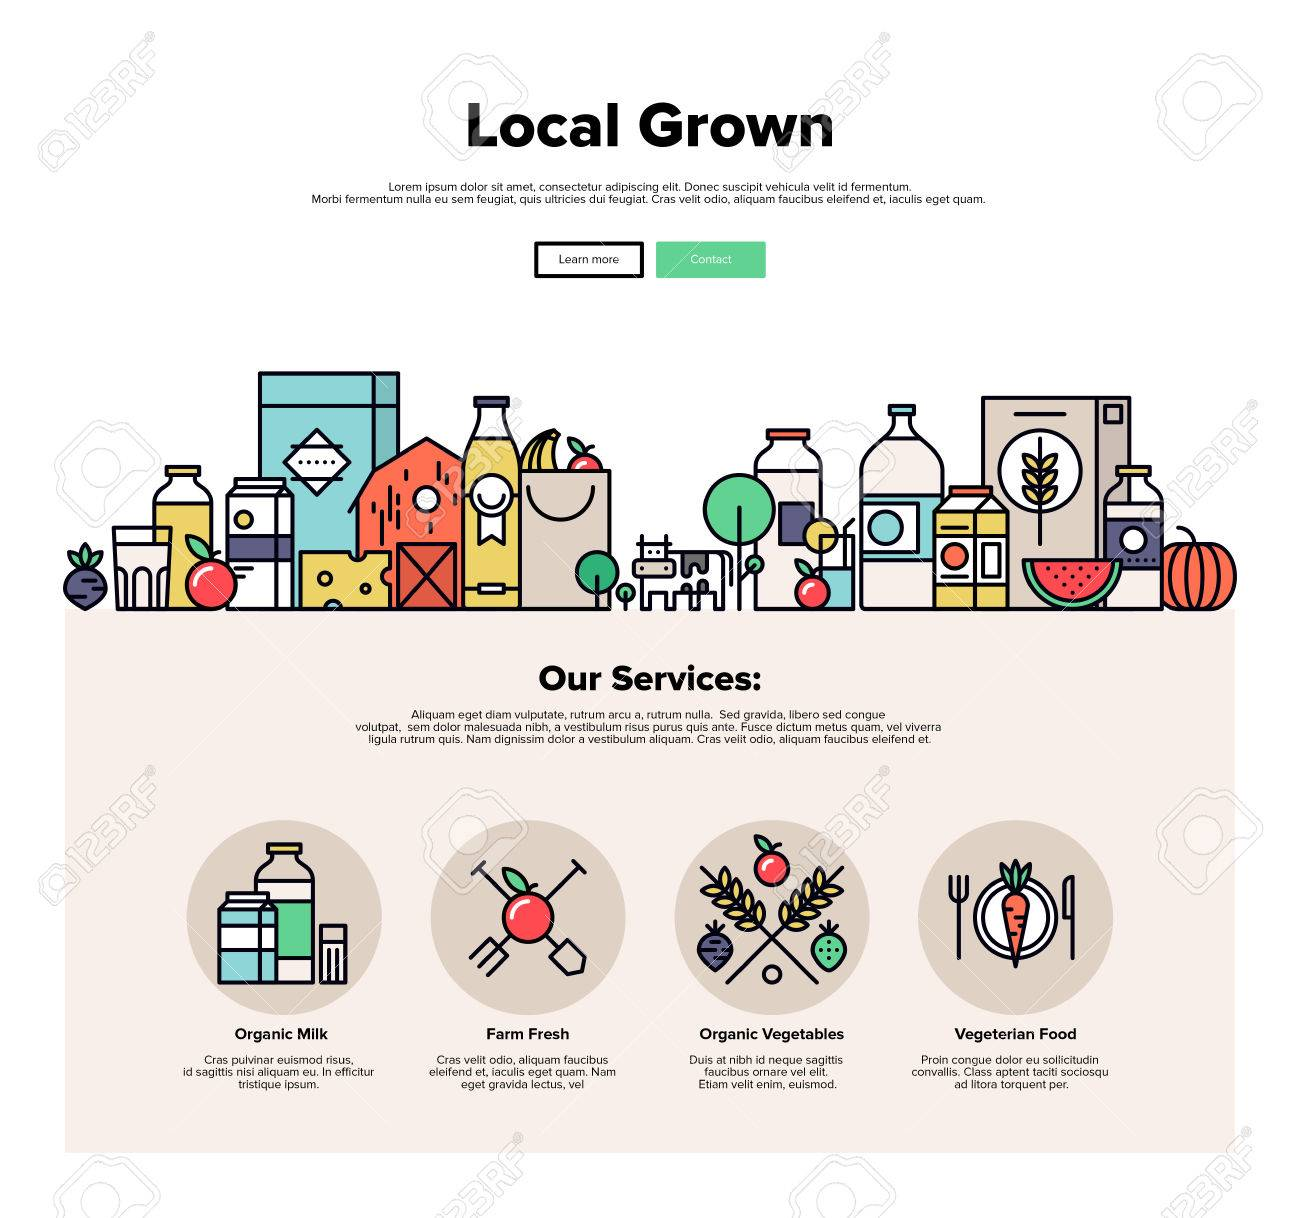 One page web design template with thin line icons of local farm grown vegetables, natural organic food, eco friendly seasonal products. Flat design graphic hero image concept, website elements layout. - 49564015